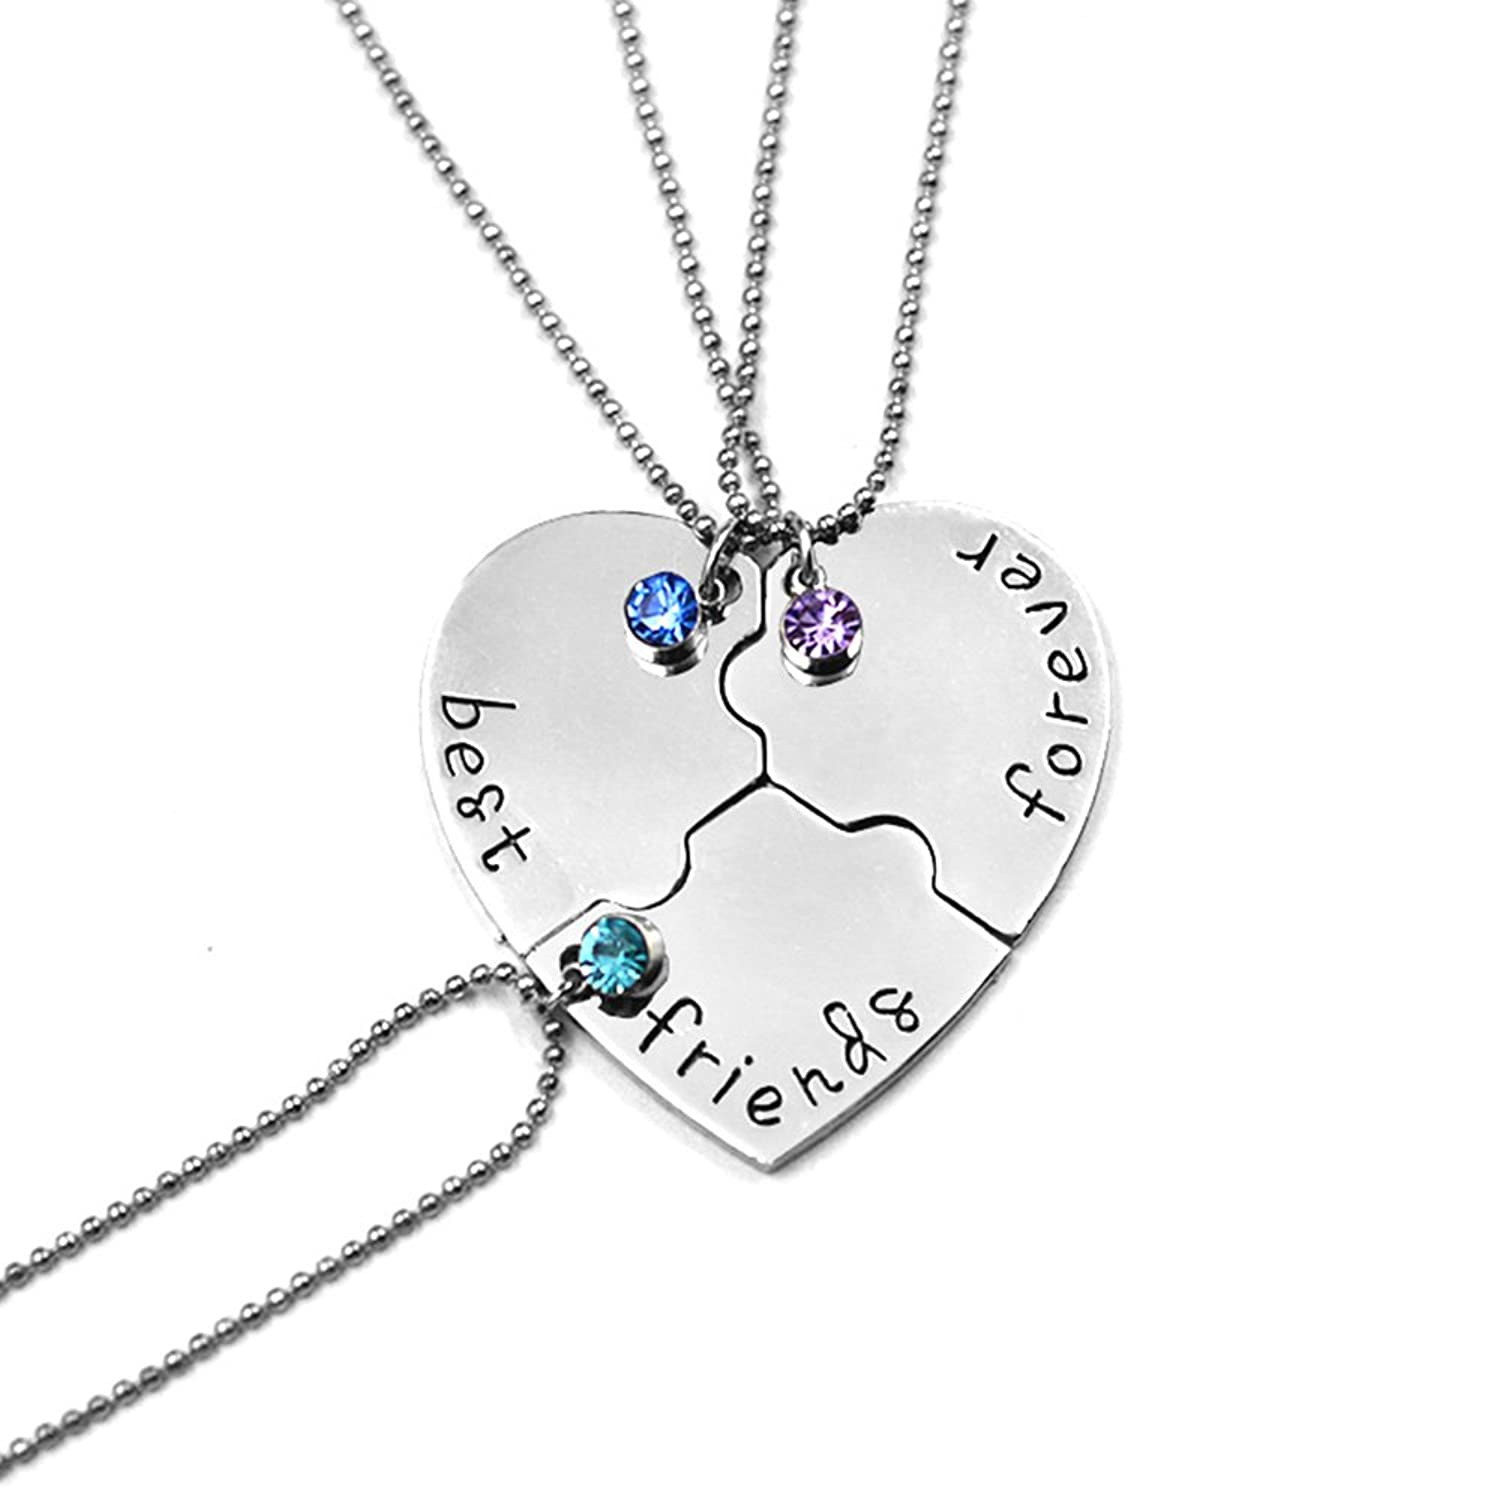 diamond charmed silver necklace product lily jigsaw original and by lilycharmed puzzle